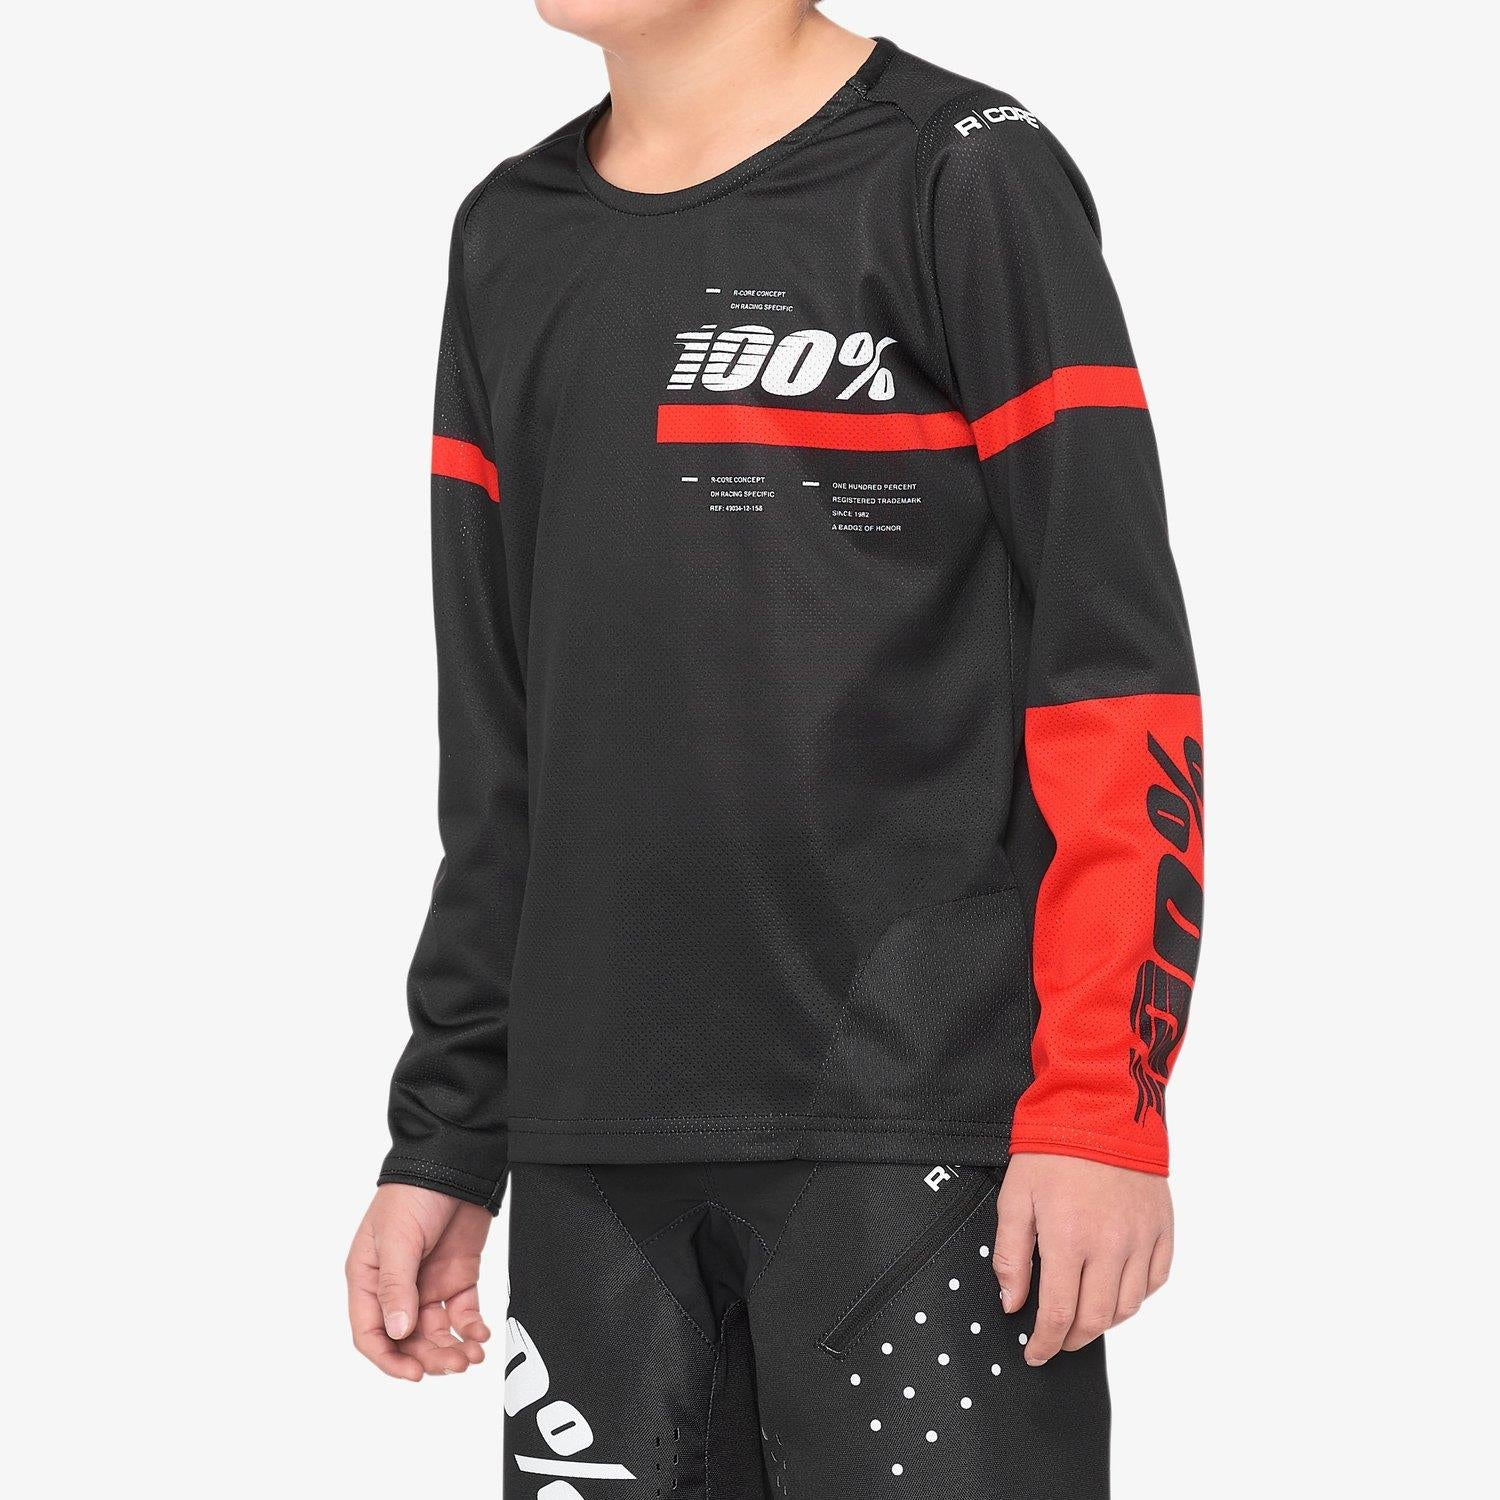 100% R-Core Race Youth Jersey - Black/Red